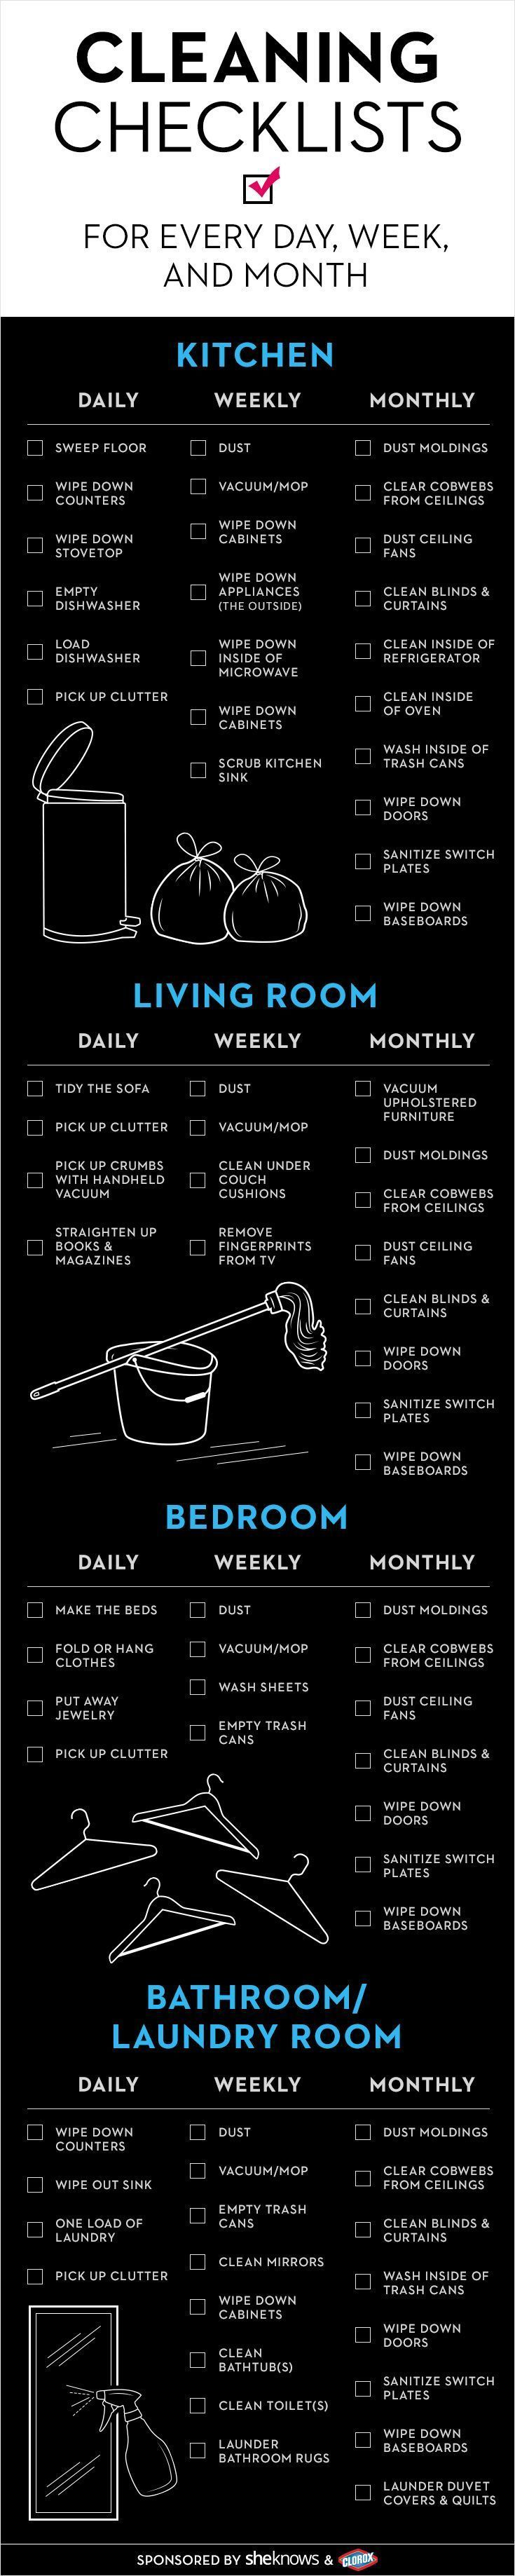 Lists and checklists are always helpful no matter what you're trying to tackle! Check out this easy checklist for routine housekeeping and cleaning!